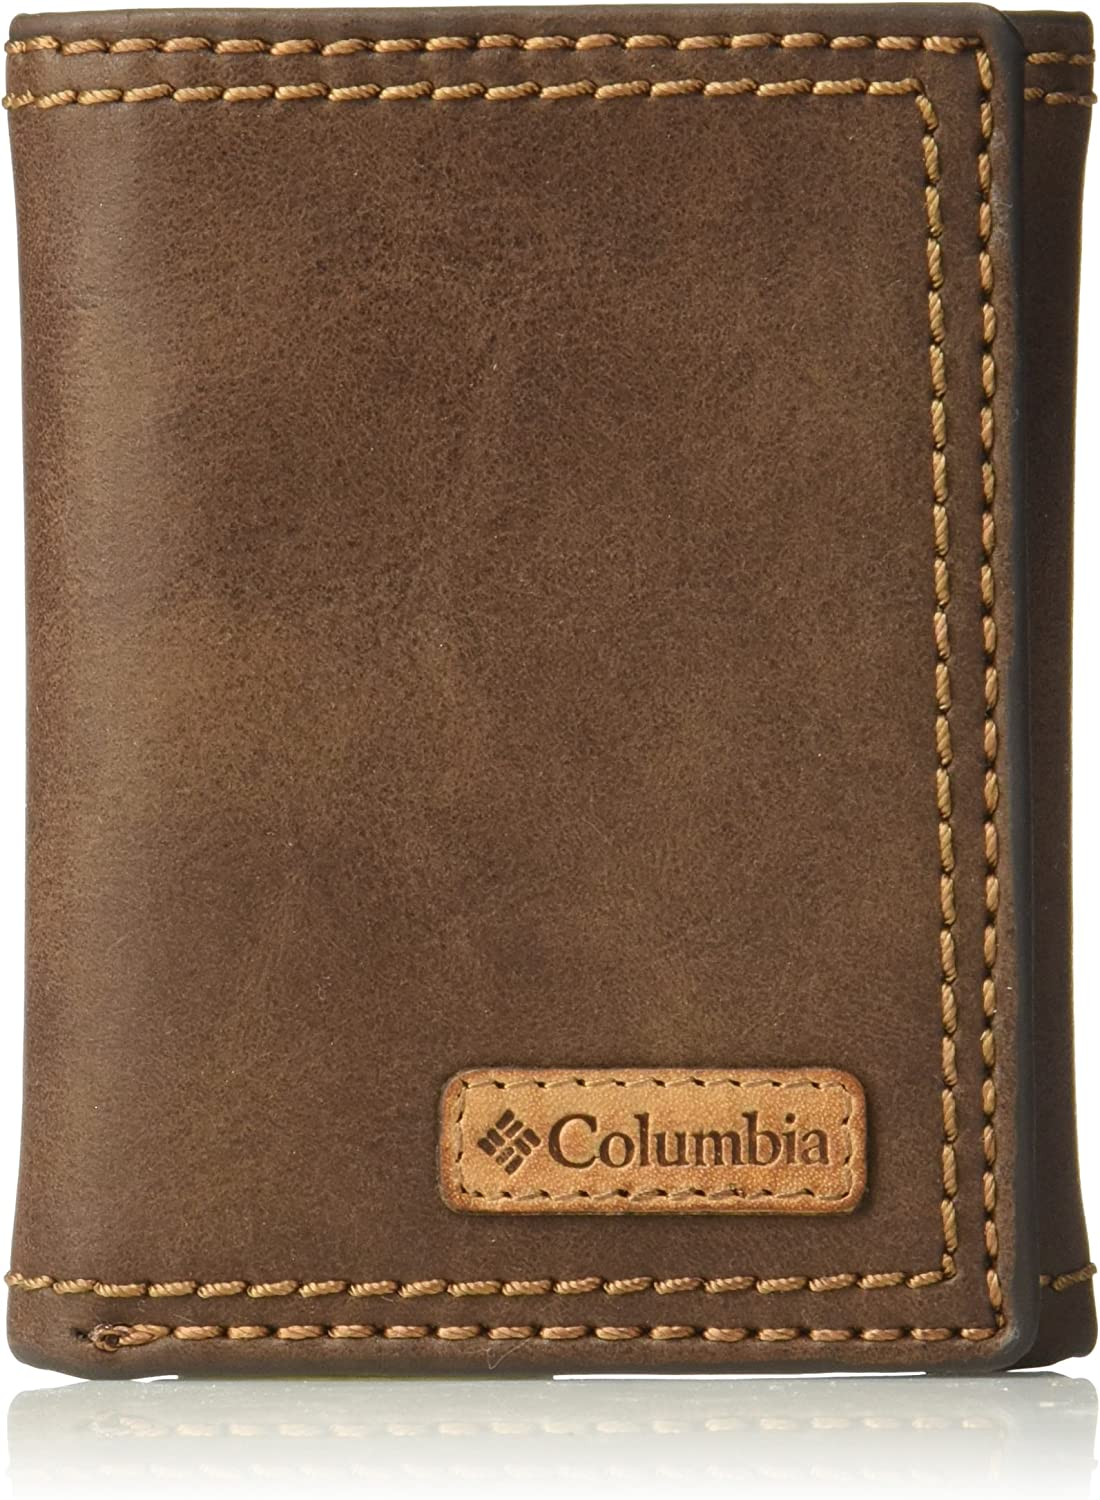 Columbia Men's RFID Trifold Wallet, Brown Casual, One Size